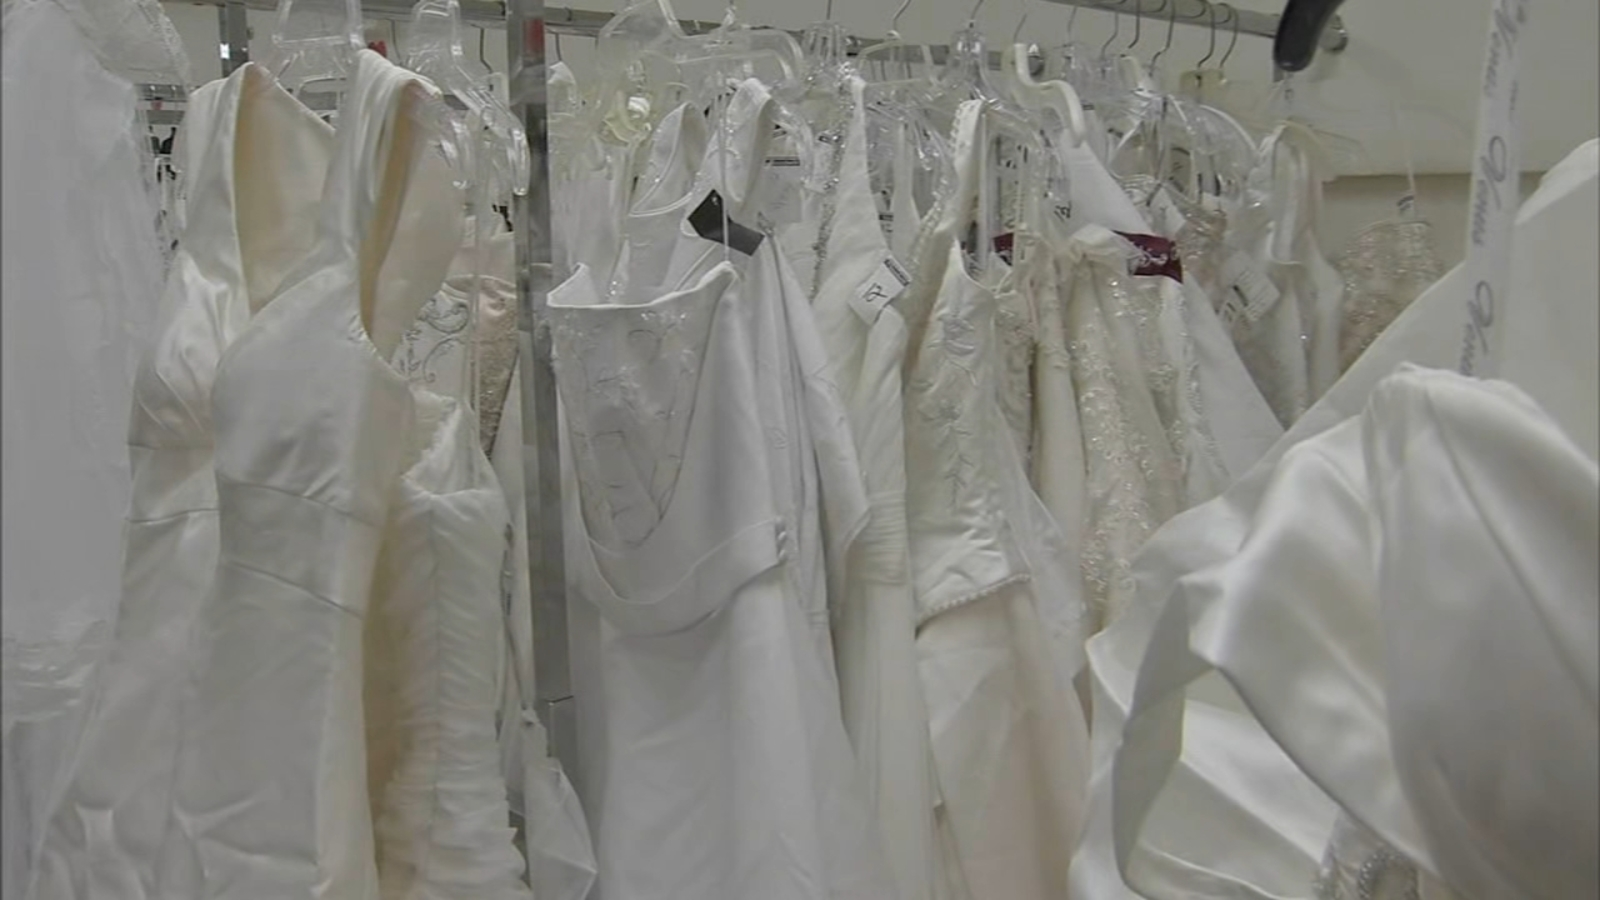 What S The Deal Deep Discounts At The Goodwill Bridal Sale 6abc Philadelphia,Short Red Dress For Wedding